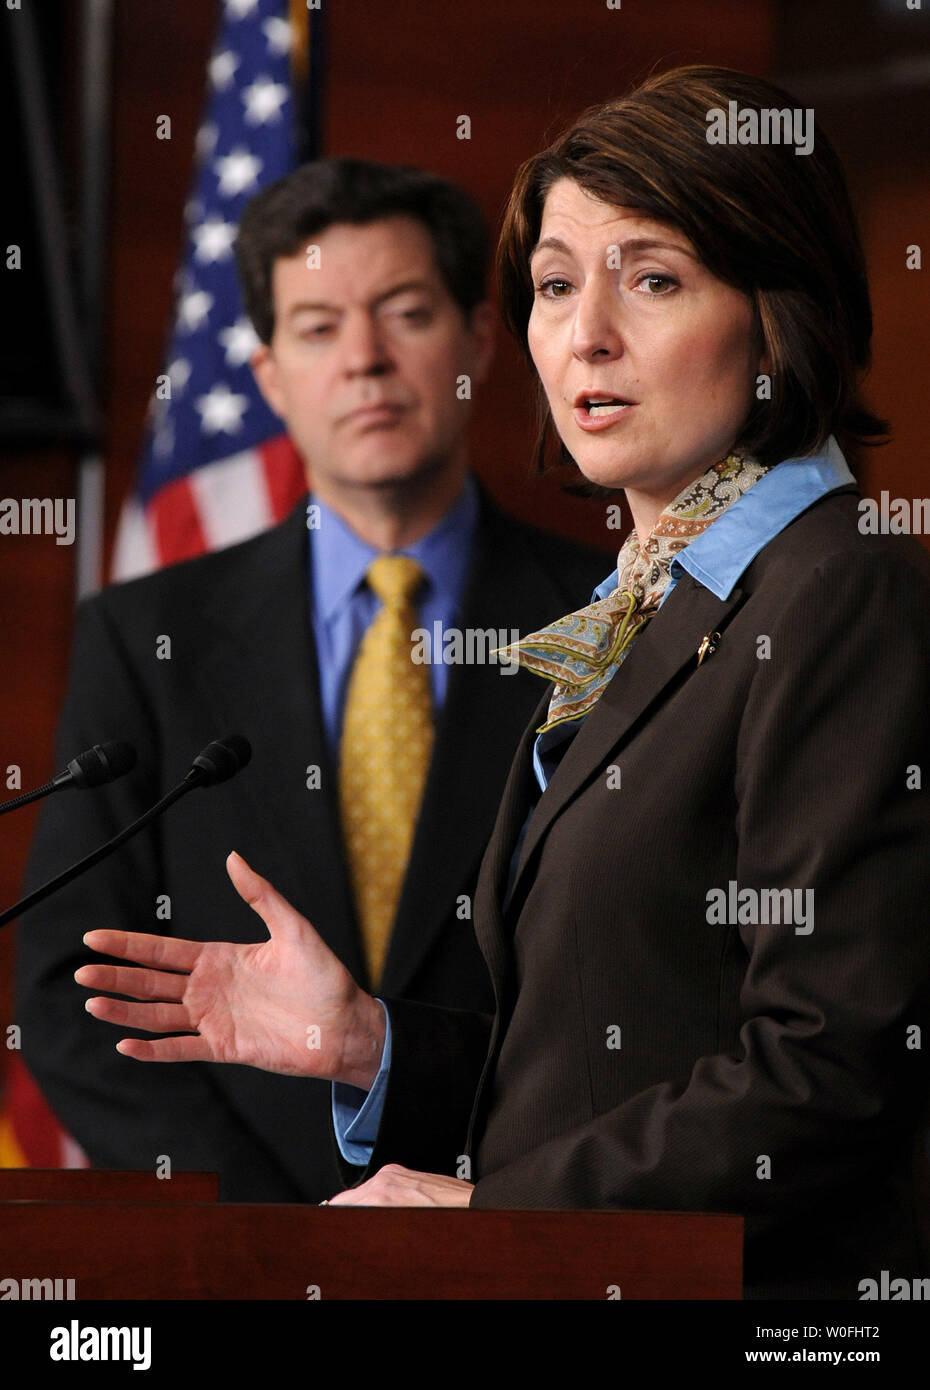 Rep. Cathy McMorris Rodgers (R-WA) (R) speaks alongside Sen. Sam Brownback (R-KS) on the health care reform bill and the possibility that the bill could provide public funding for abortions, in Washington on March 18, 2010.  UPI/Kevin Dietsch Stock Photo